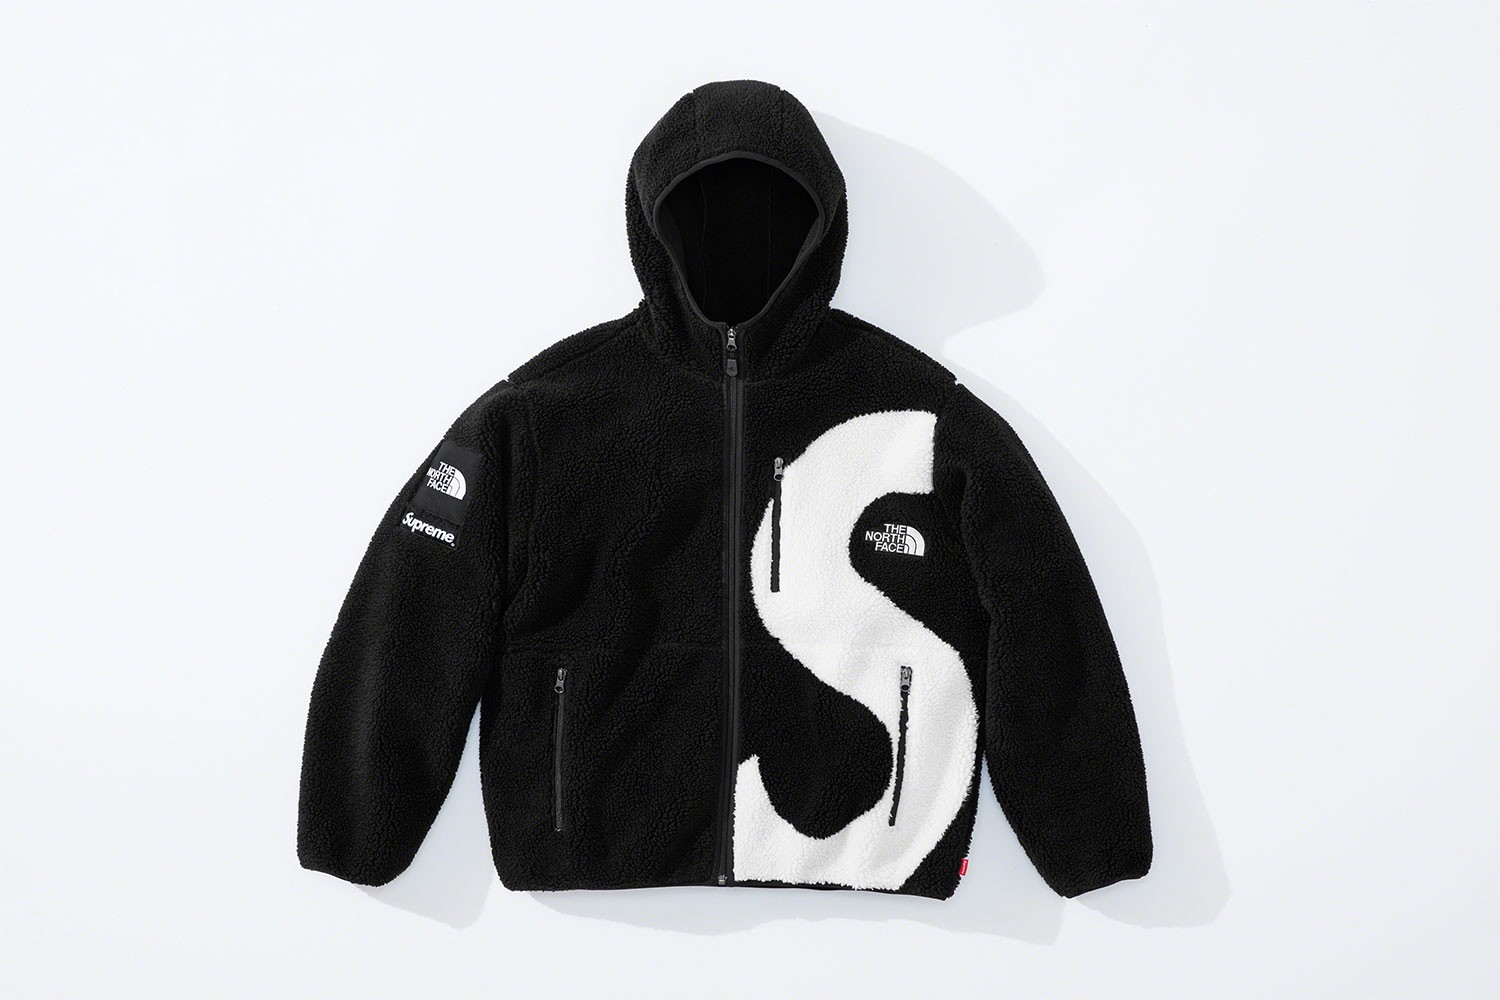 Supreme x The North Face Fall 2020 Collection Info Summit Series Himalayan Parka Mountain Jacket Hooded Fleece Jacket Expedition Backpack Shoulder Bag Dolomite 3S-20° Sleeping Bag Nuptse Mitts